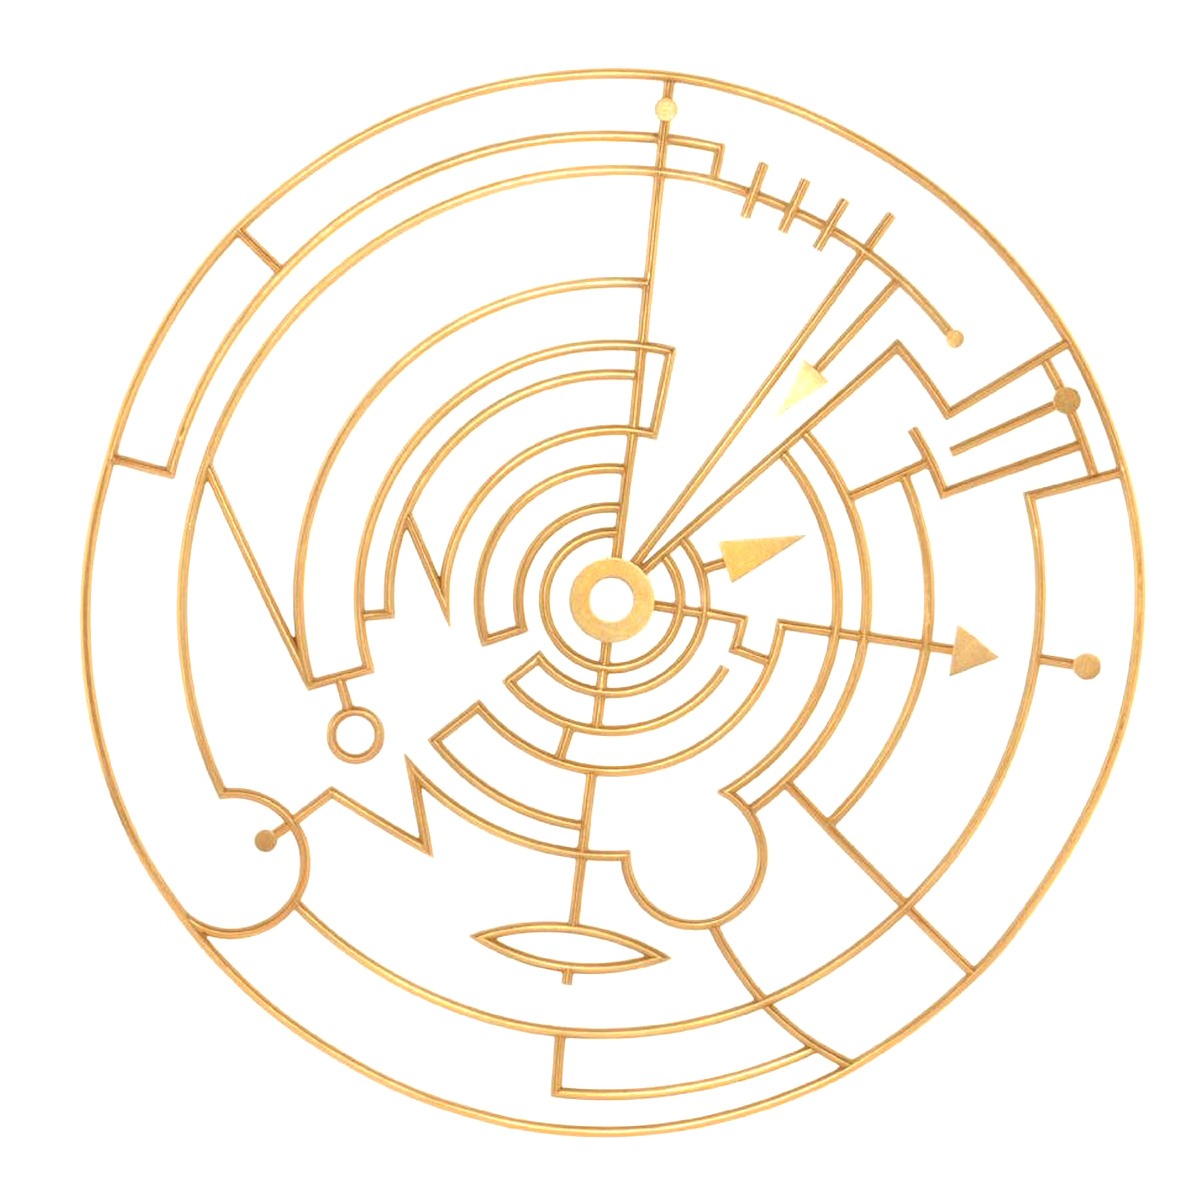 Wendy Ramshaw - Plan in a Gold Circle, 18ct yellow gold